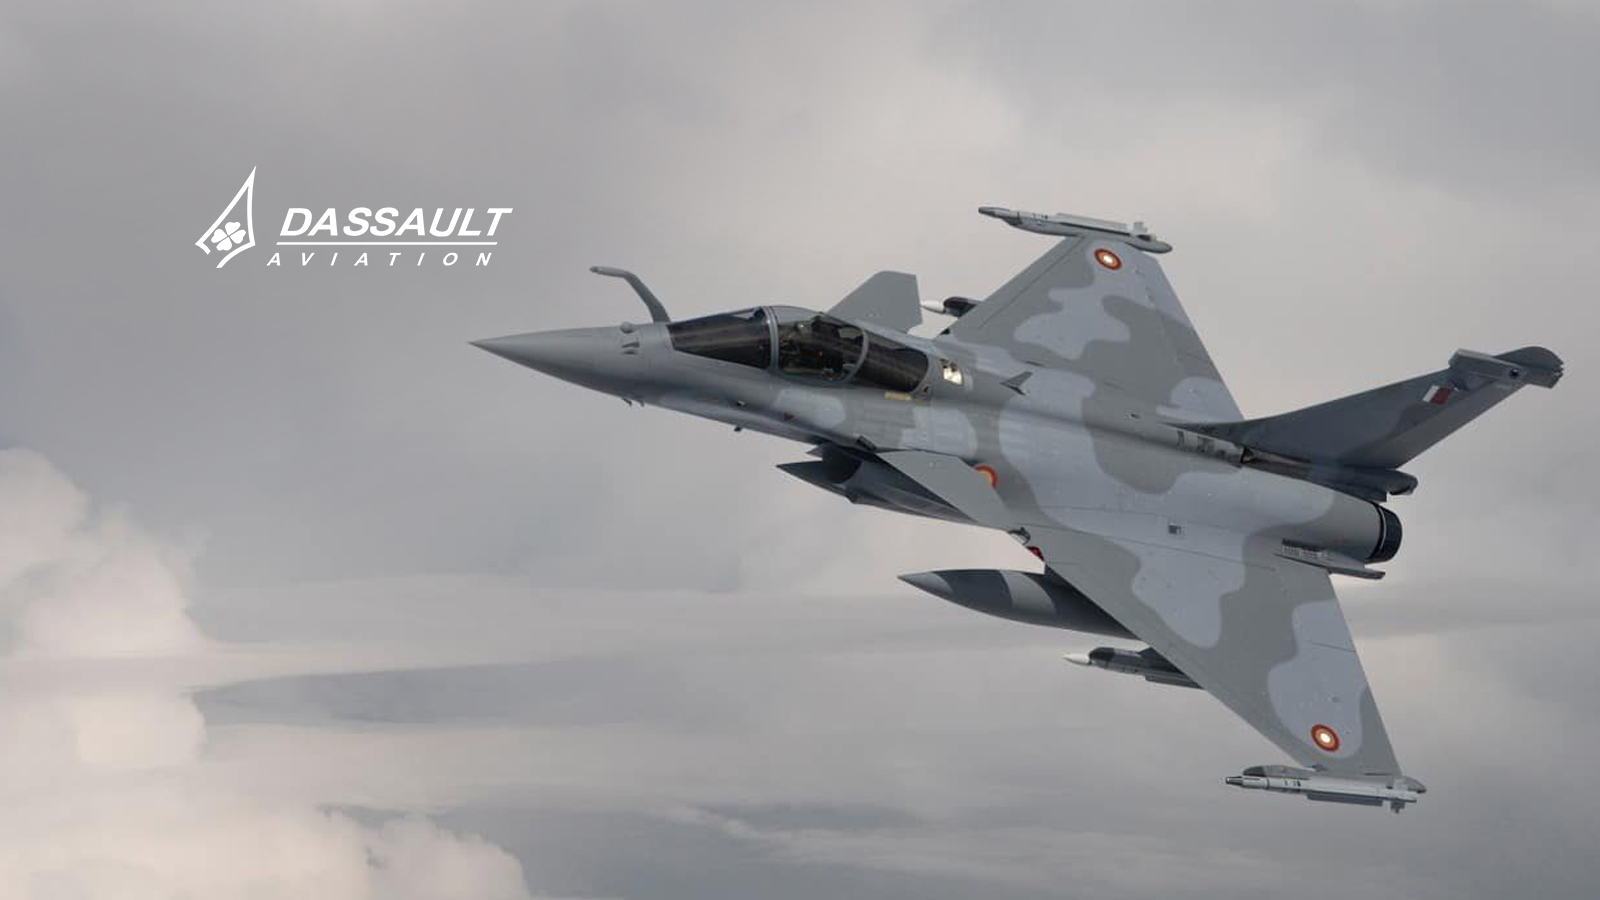 dassault aviation and airbus join forces on future combat